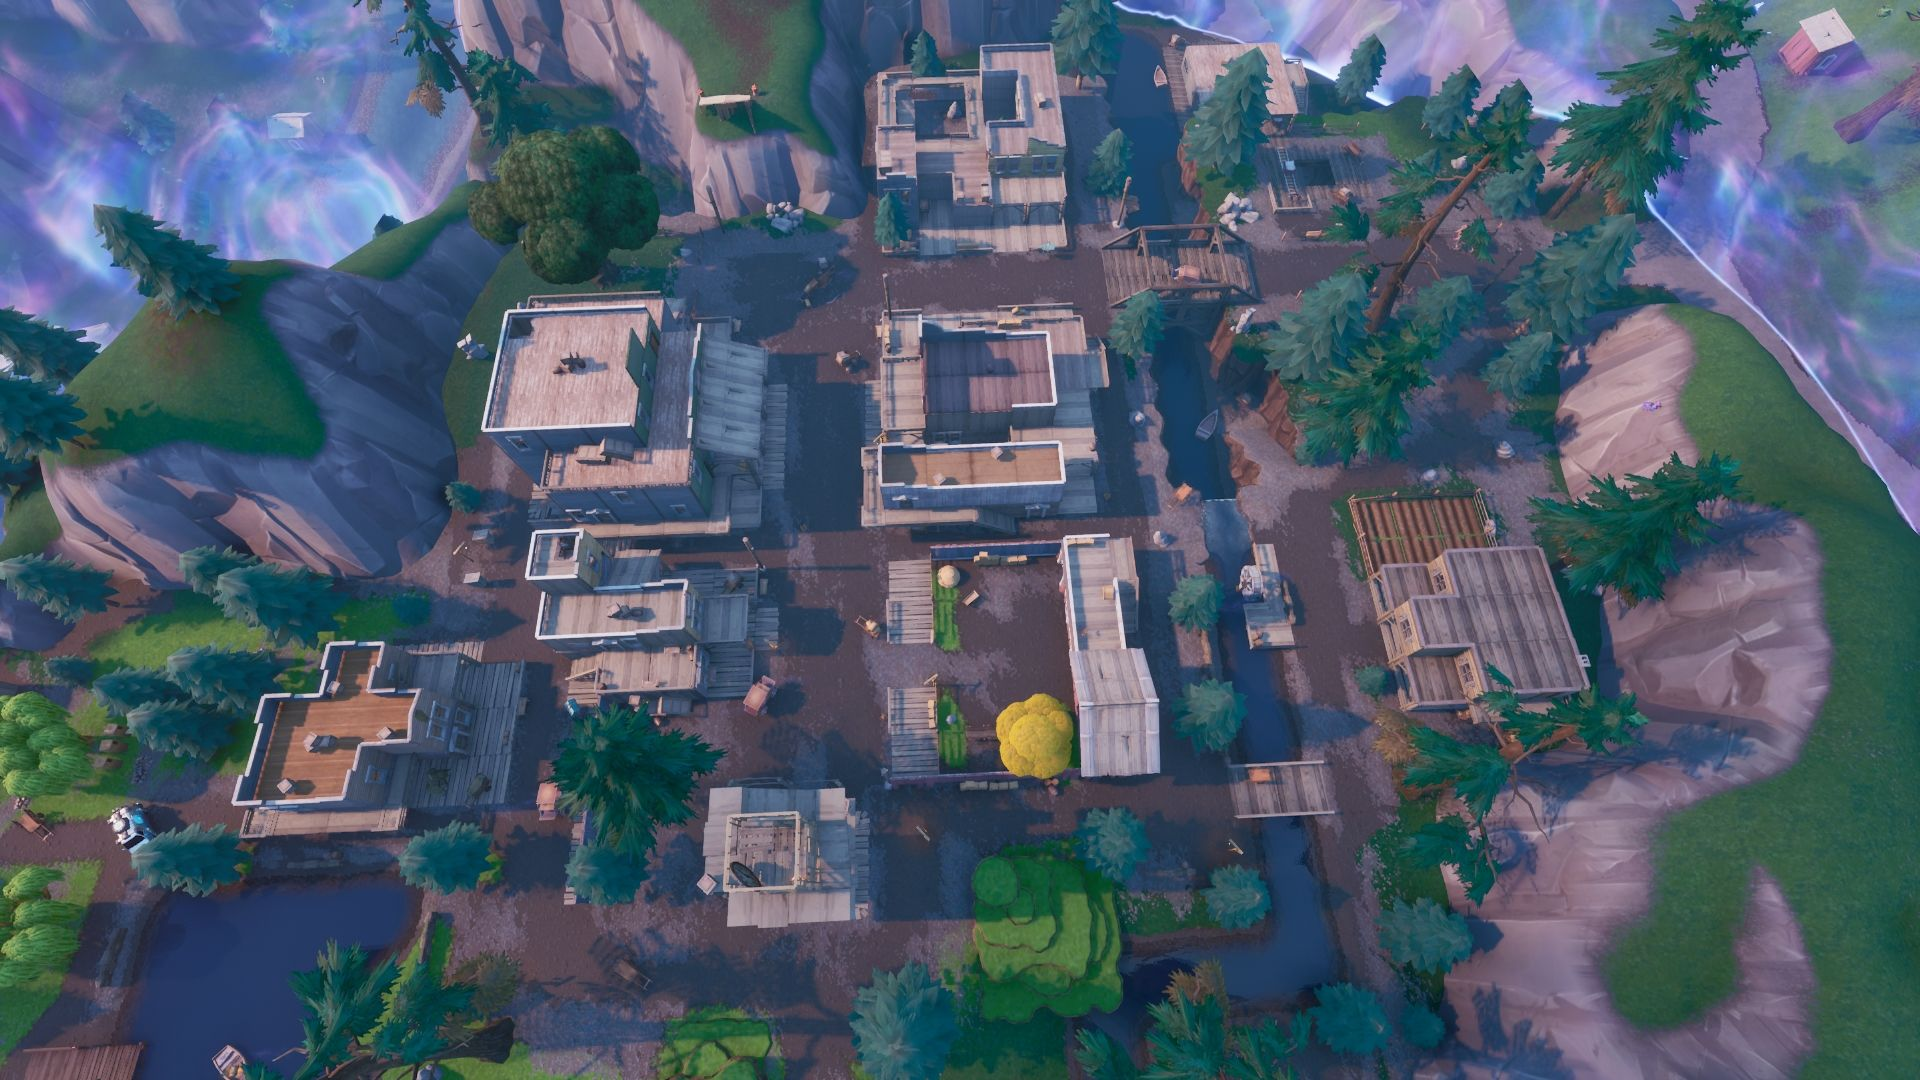 Fortnite Battle Royale Tilted Town.jpg